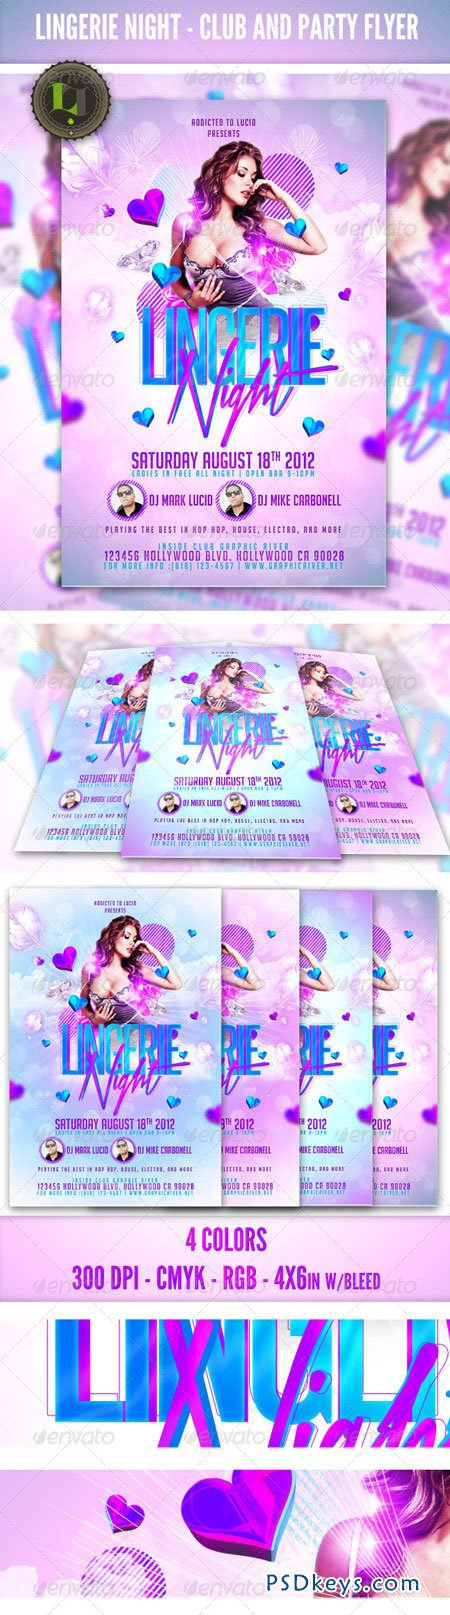 Ladies Night Party Club Flyer Template 2503811